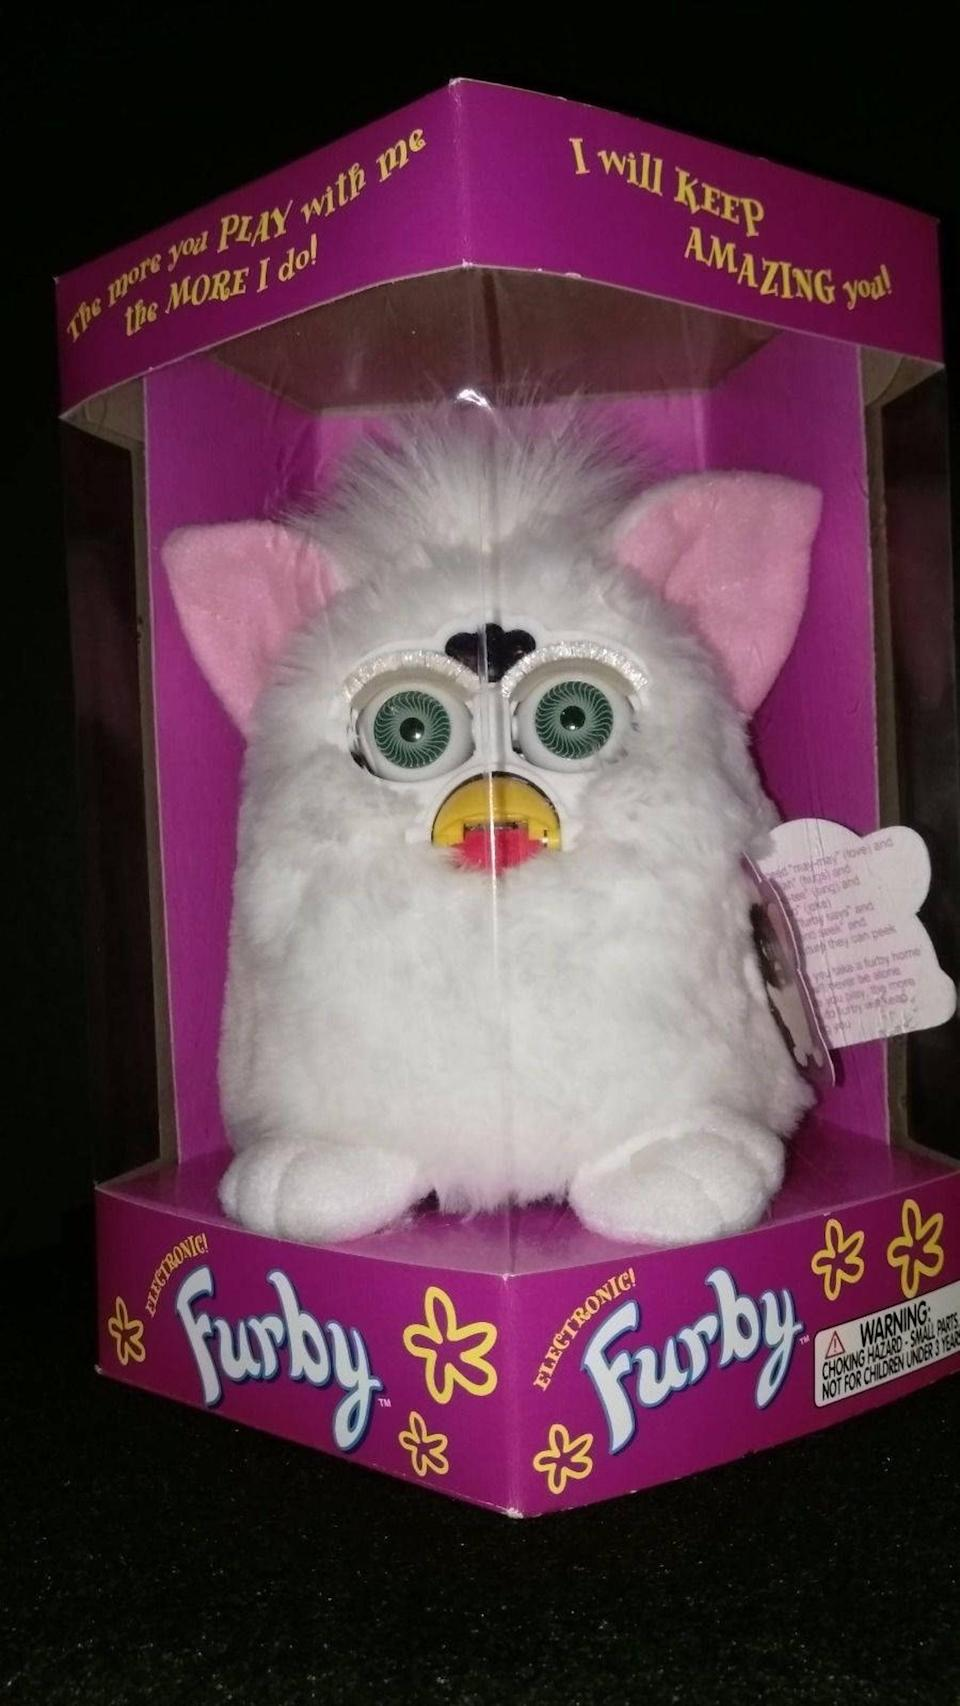 <p>Give the It doll of the '90s, a <span>1998 Furby</span> ($80), to a lucky loved one with a sweet spot for the furry creatures. </p>